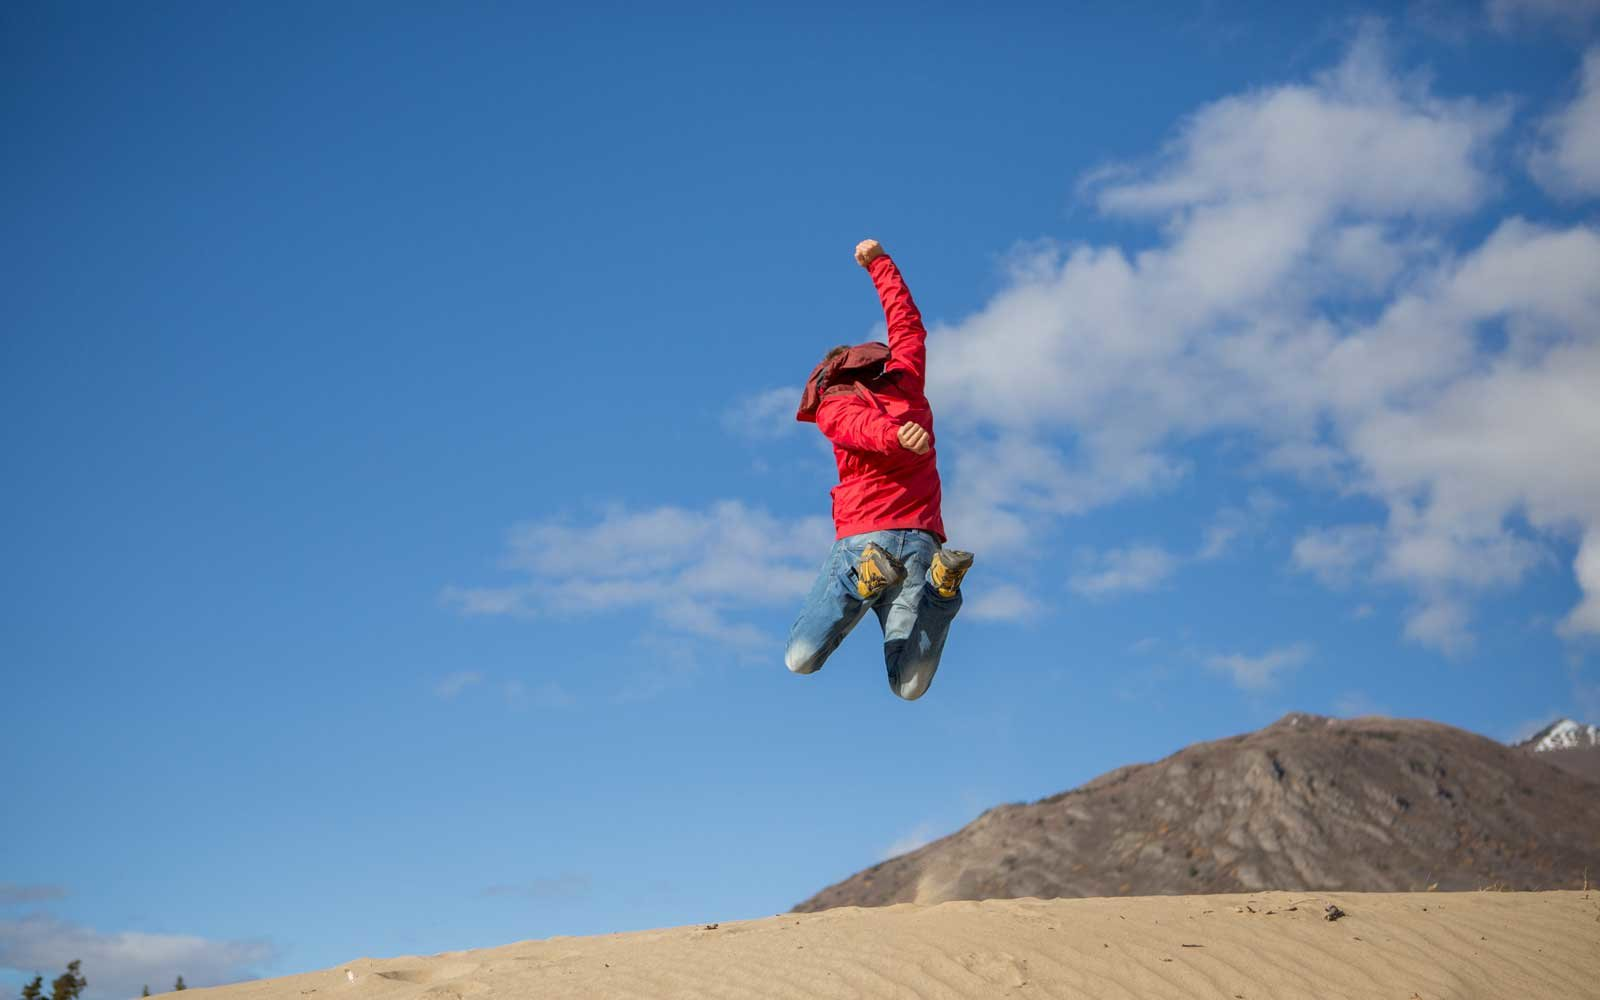 Young cheerful man in desert jumping high up in the air.